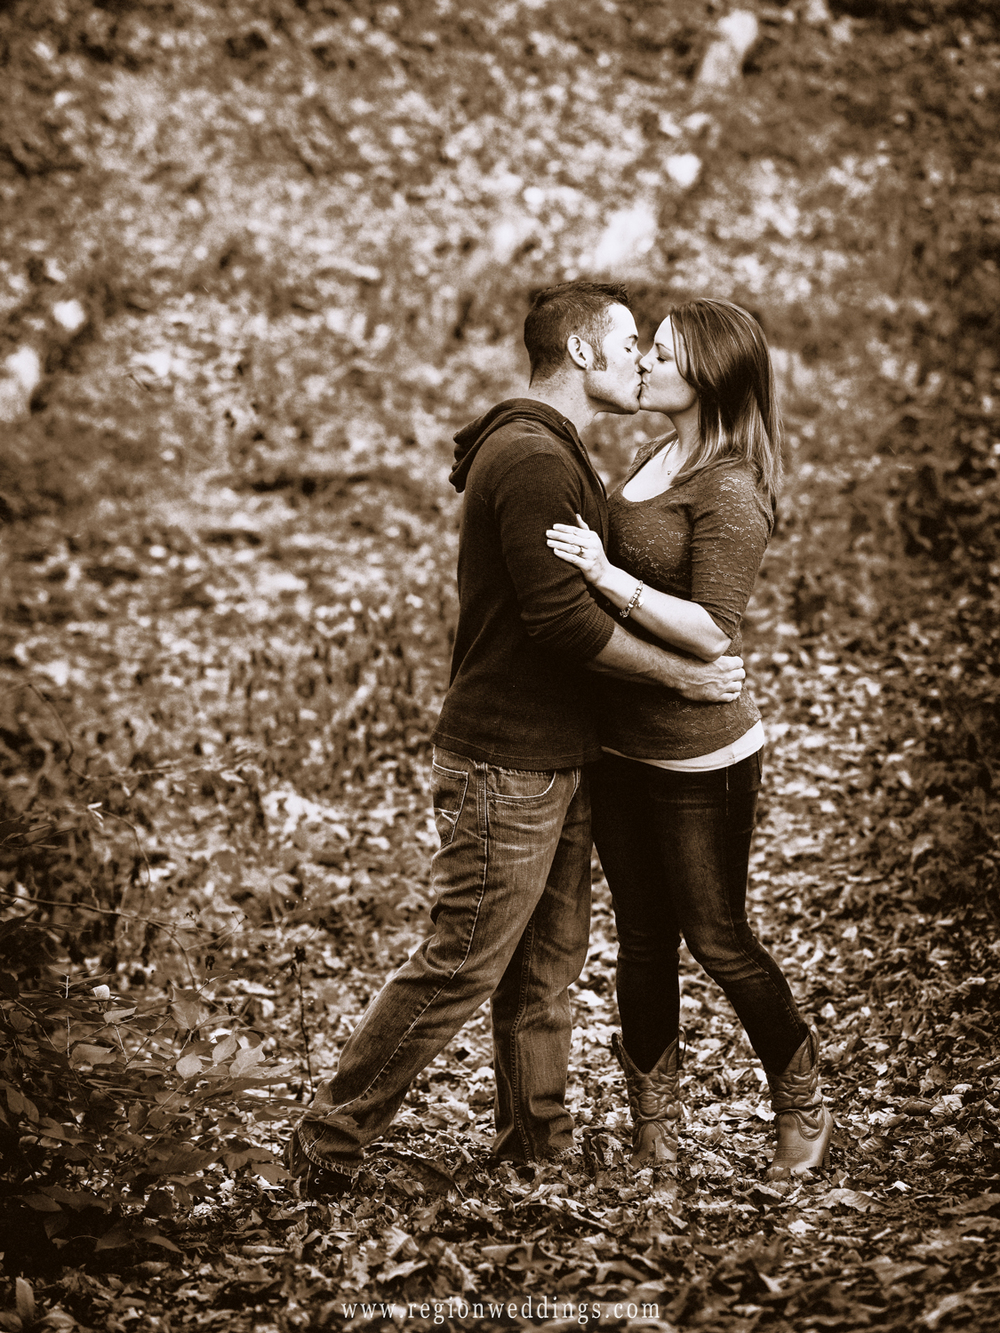 A couple in loves kisses romantically while walking in the woods.